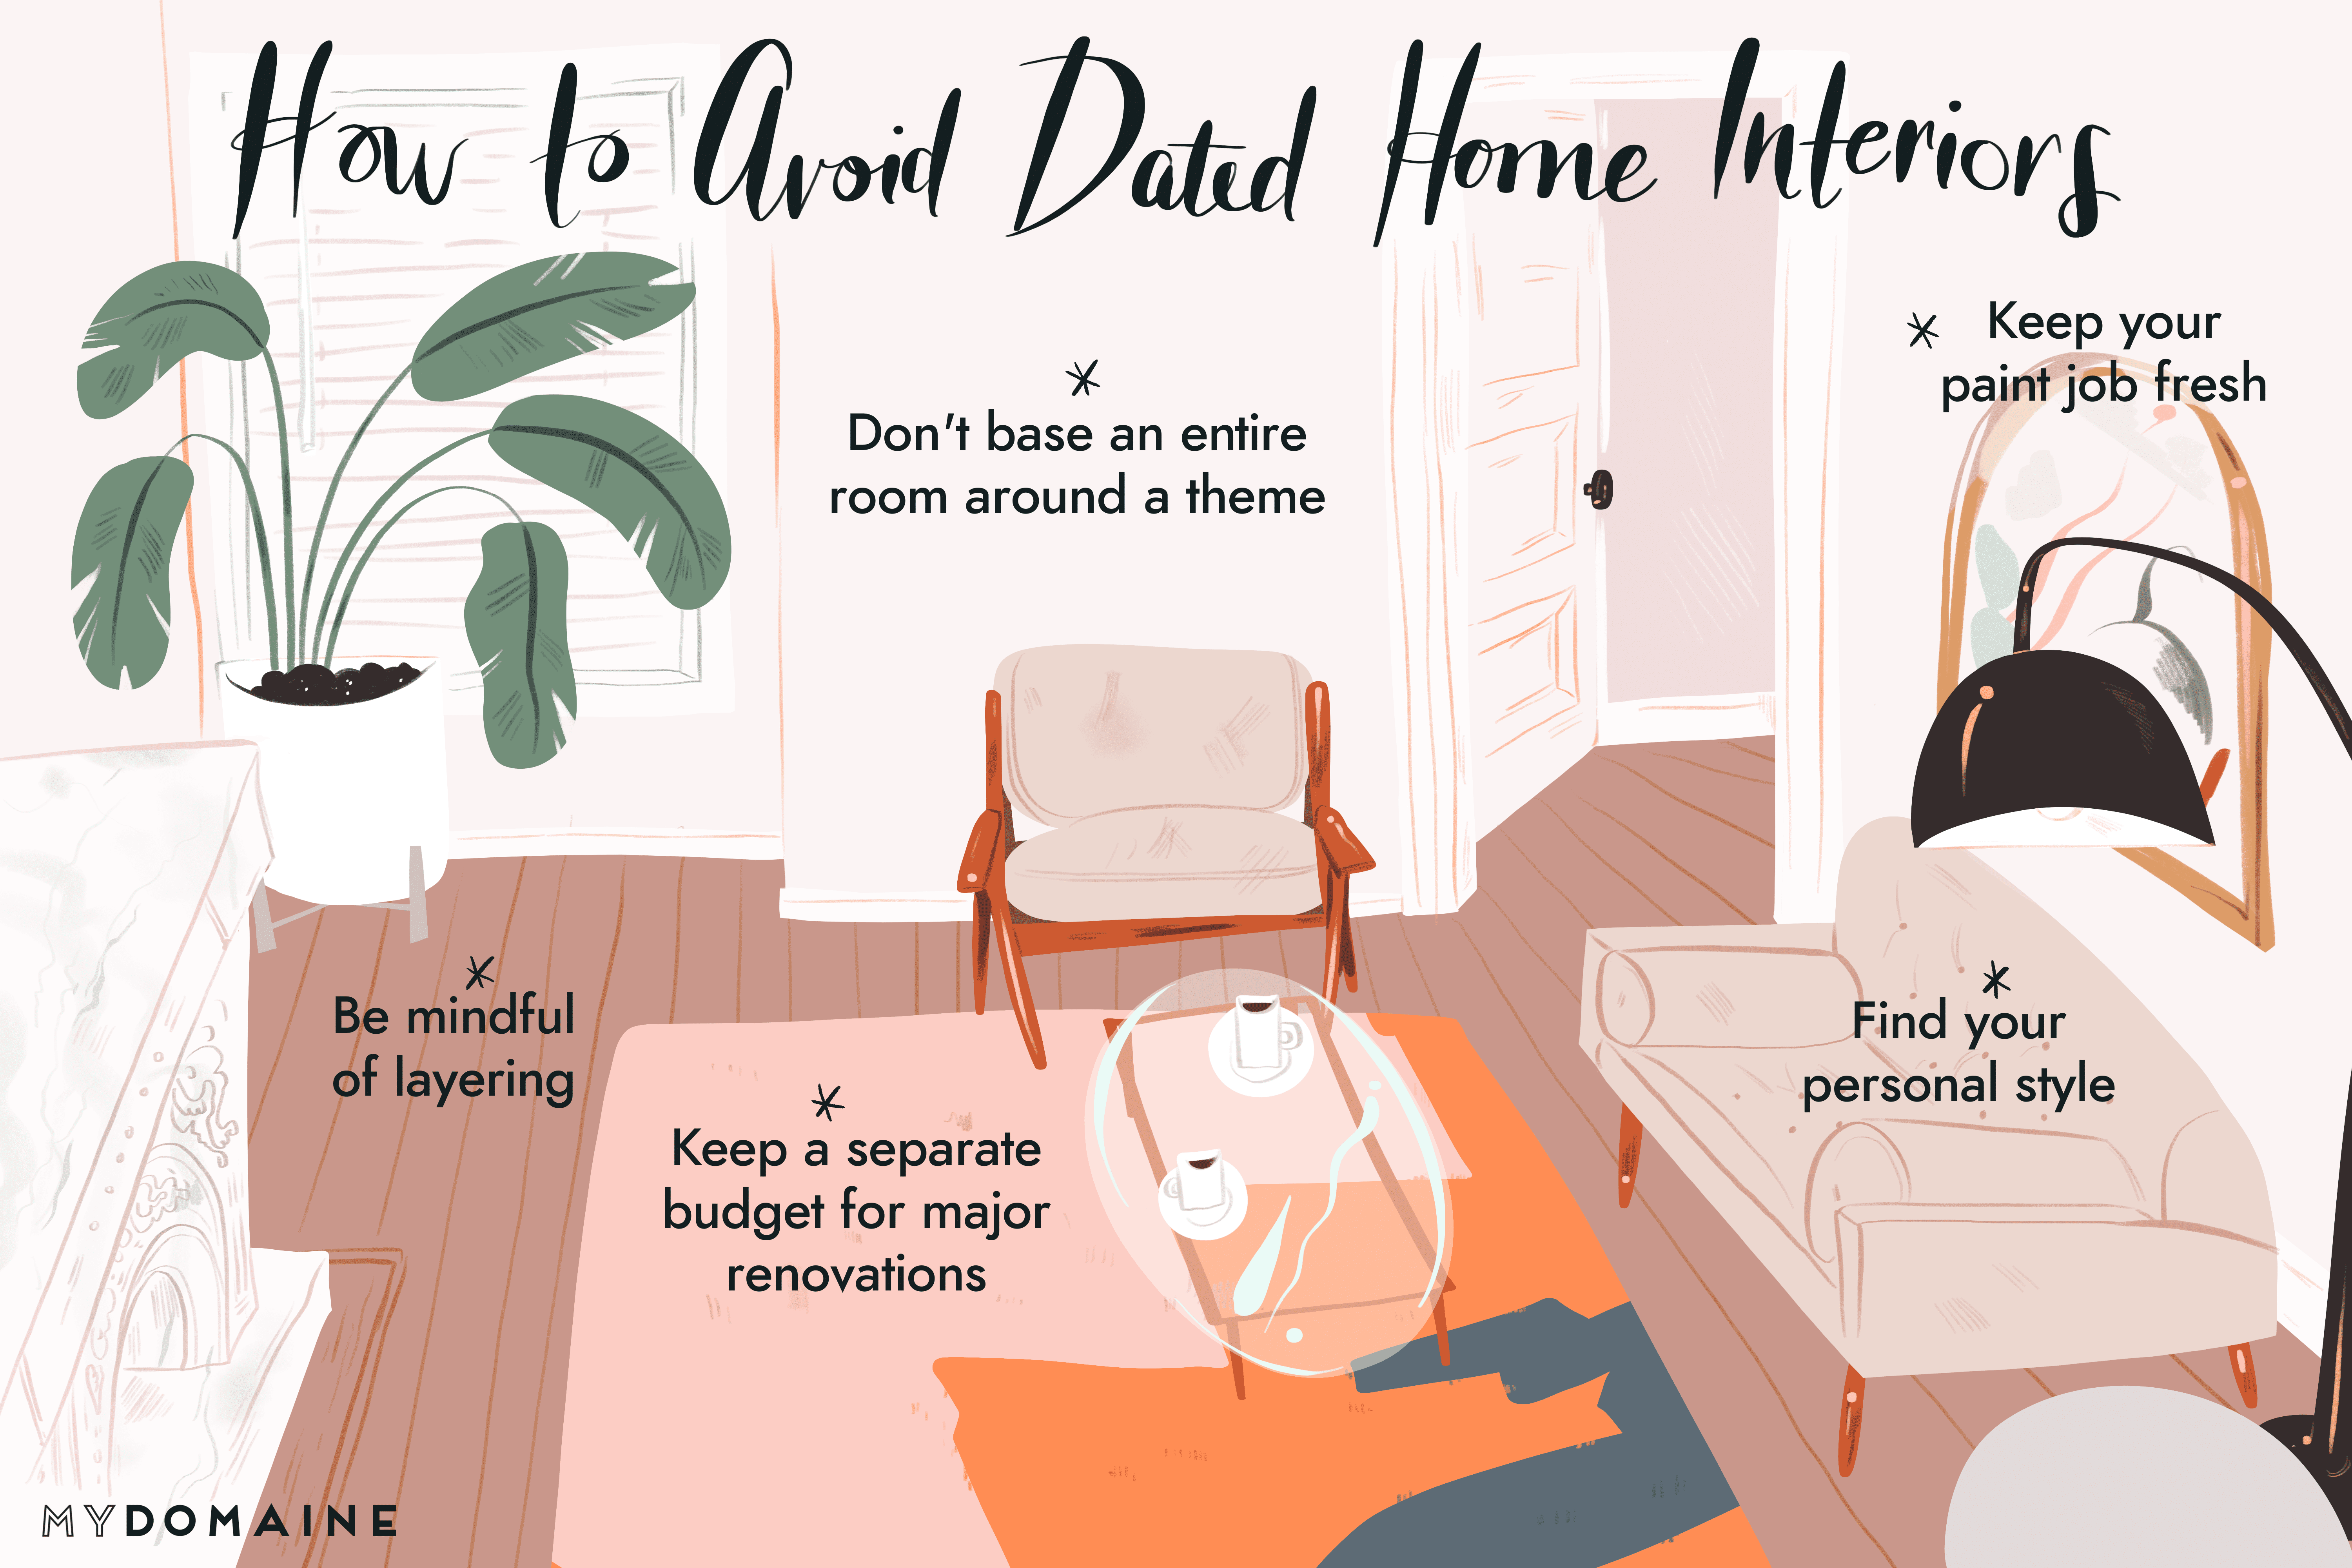 How to Avoid Dated Home Interiors